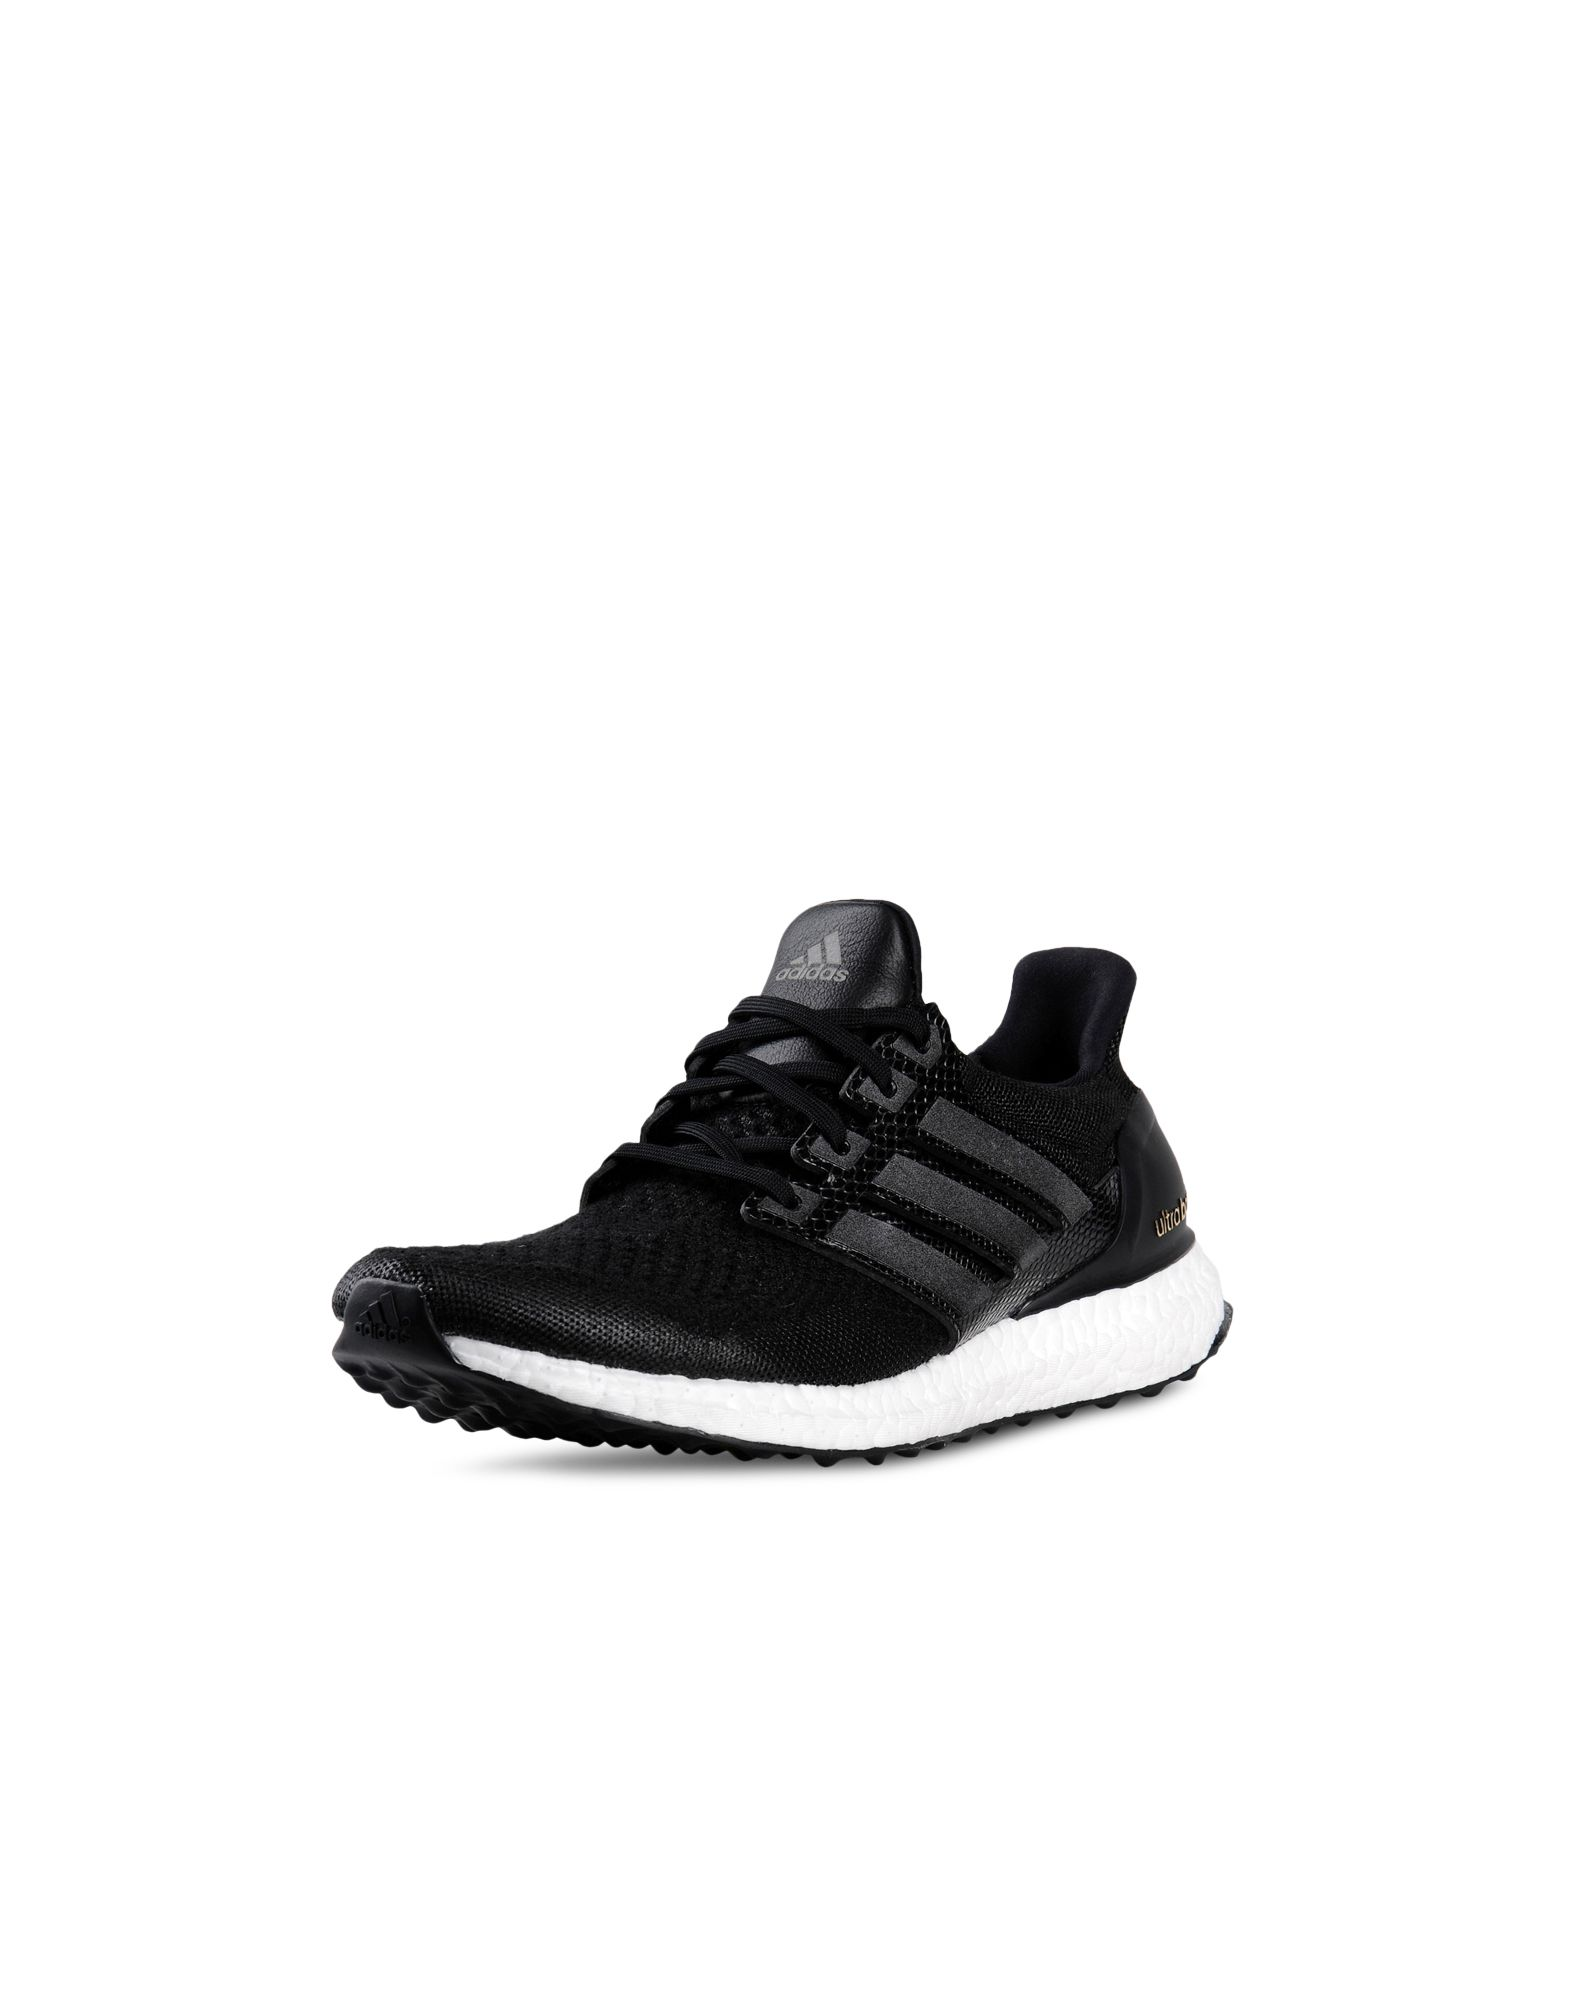 Adidas Ultra Boost J&d